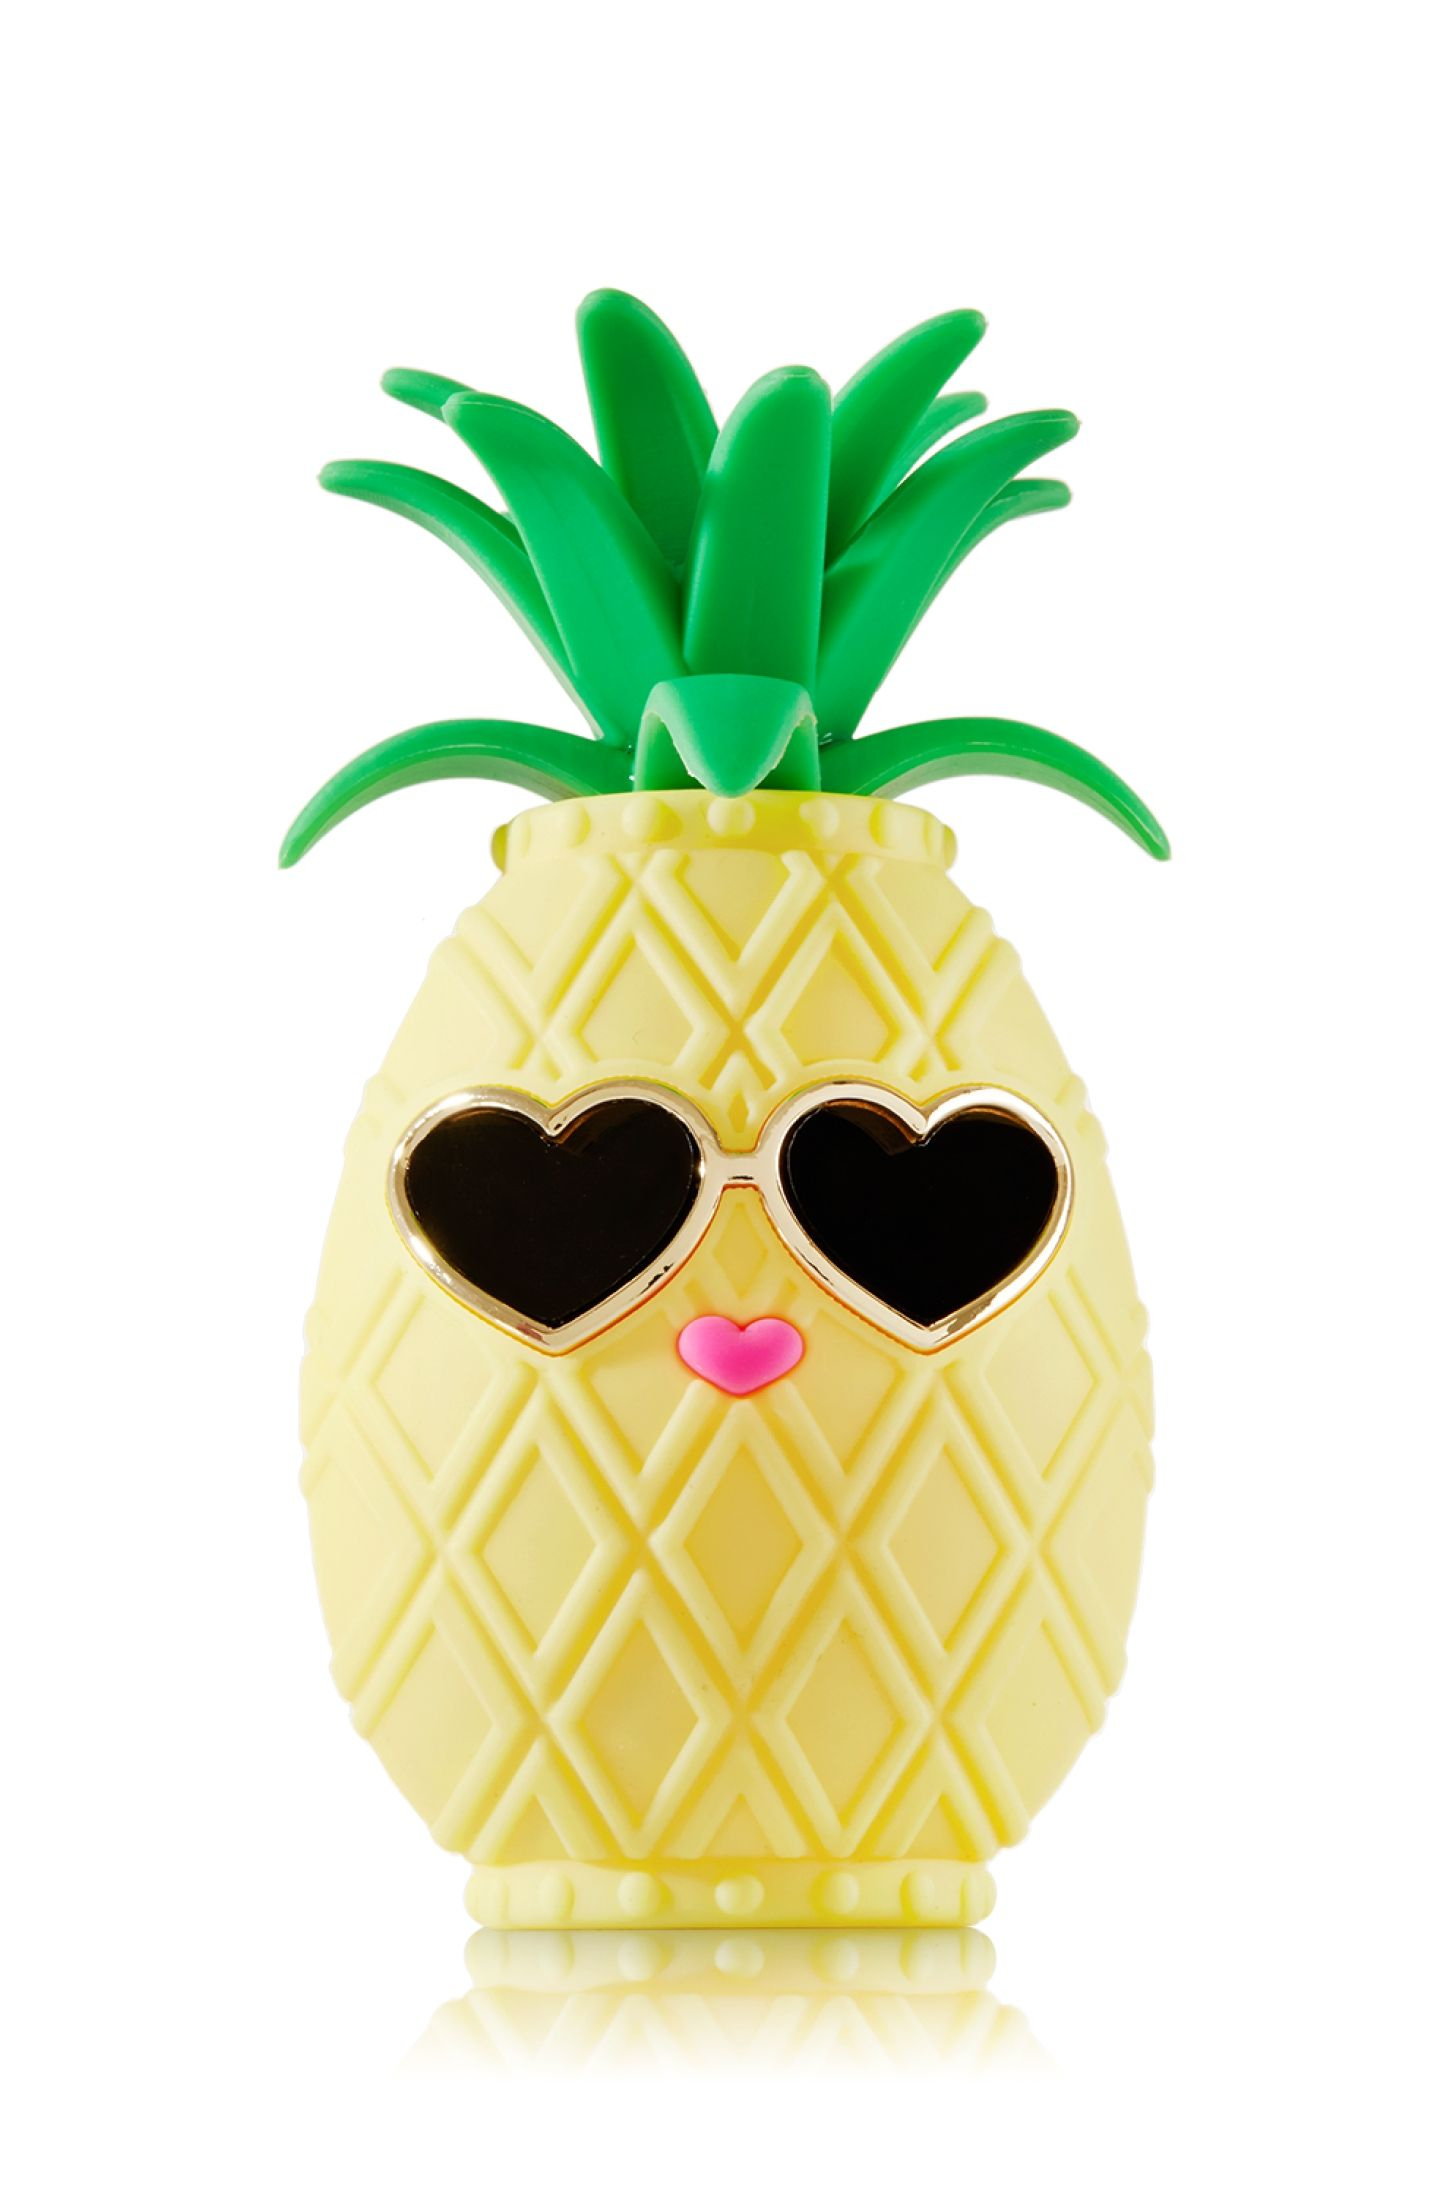 Pineapple Desk Pocketbac Holder Bath Body Works Bath Body